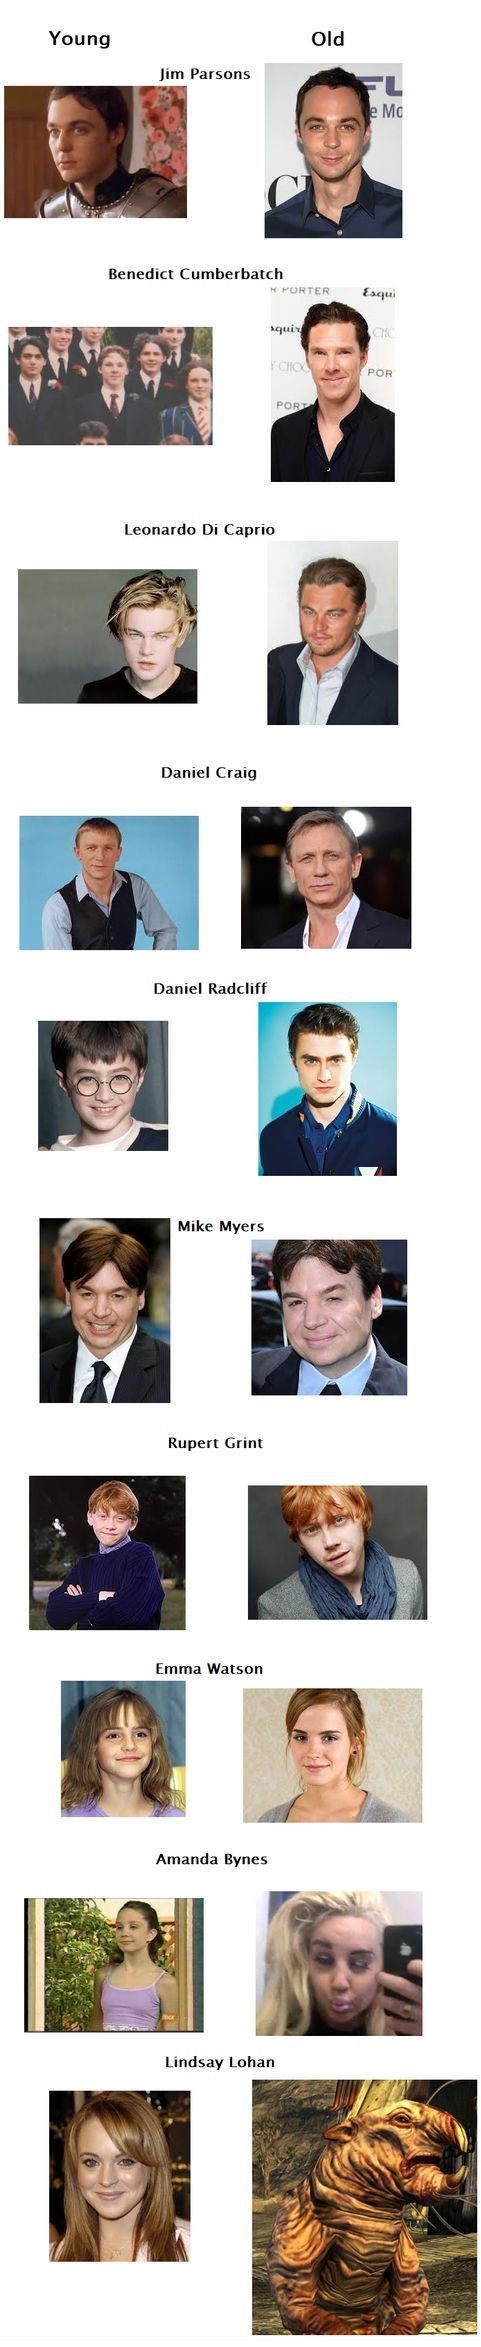 funny-picture-celebs-young-old